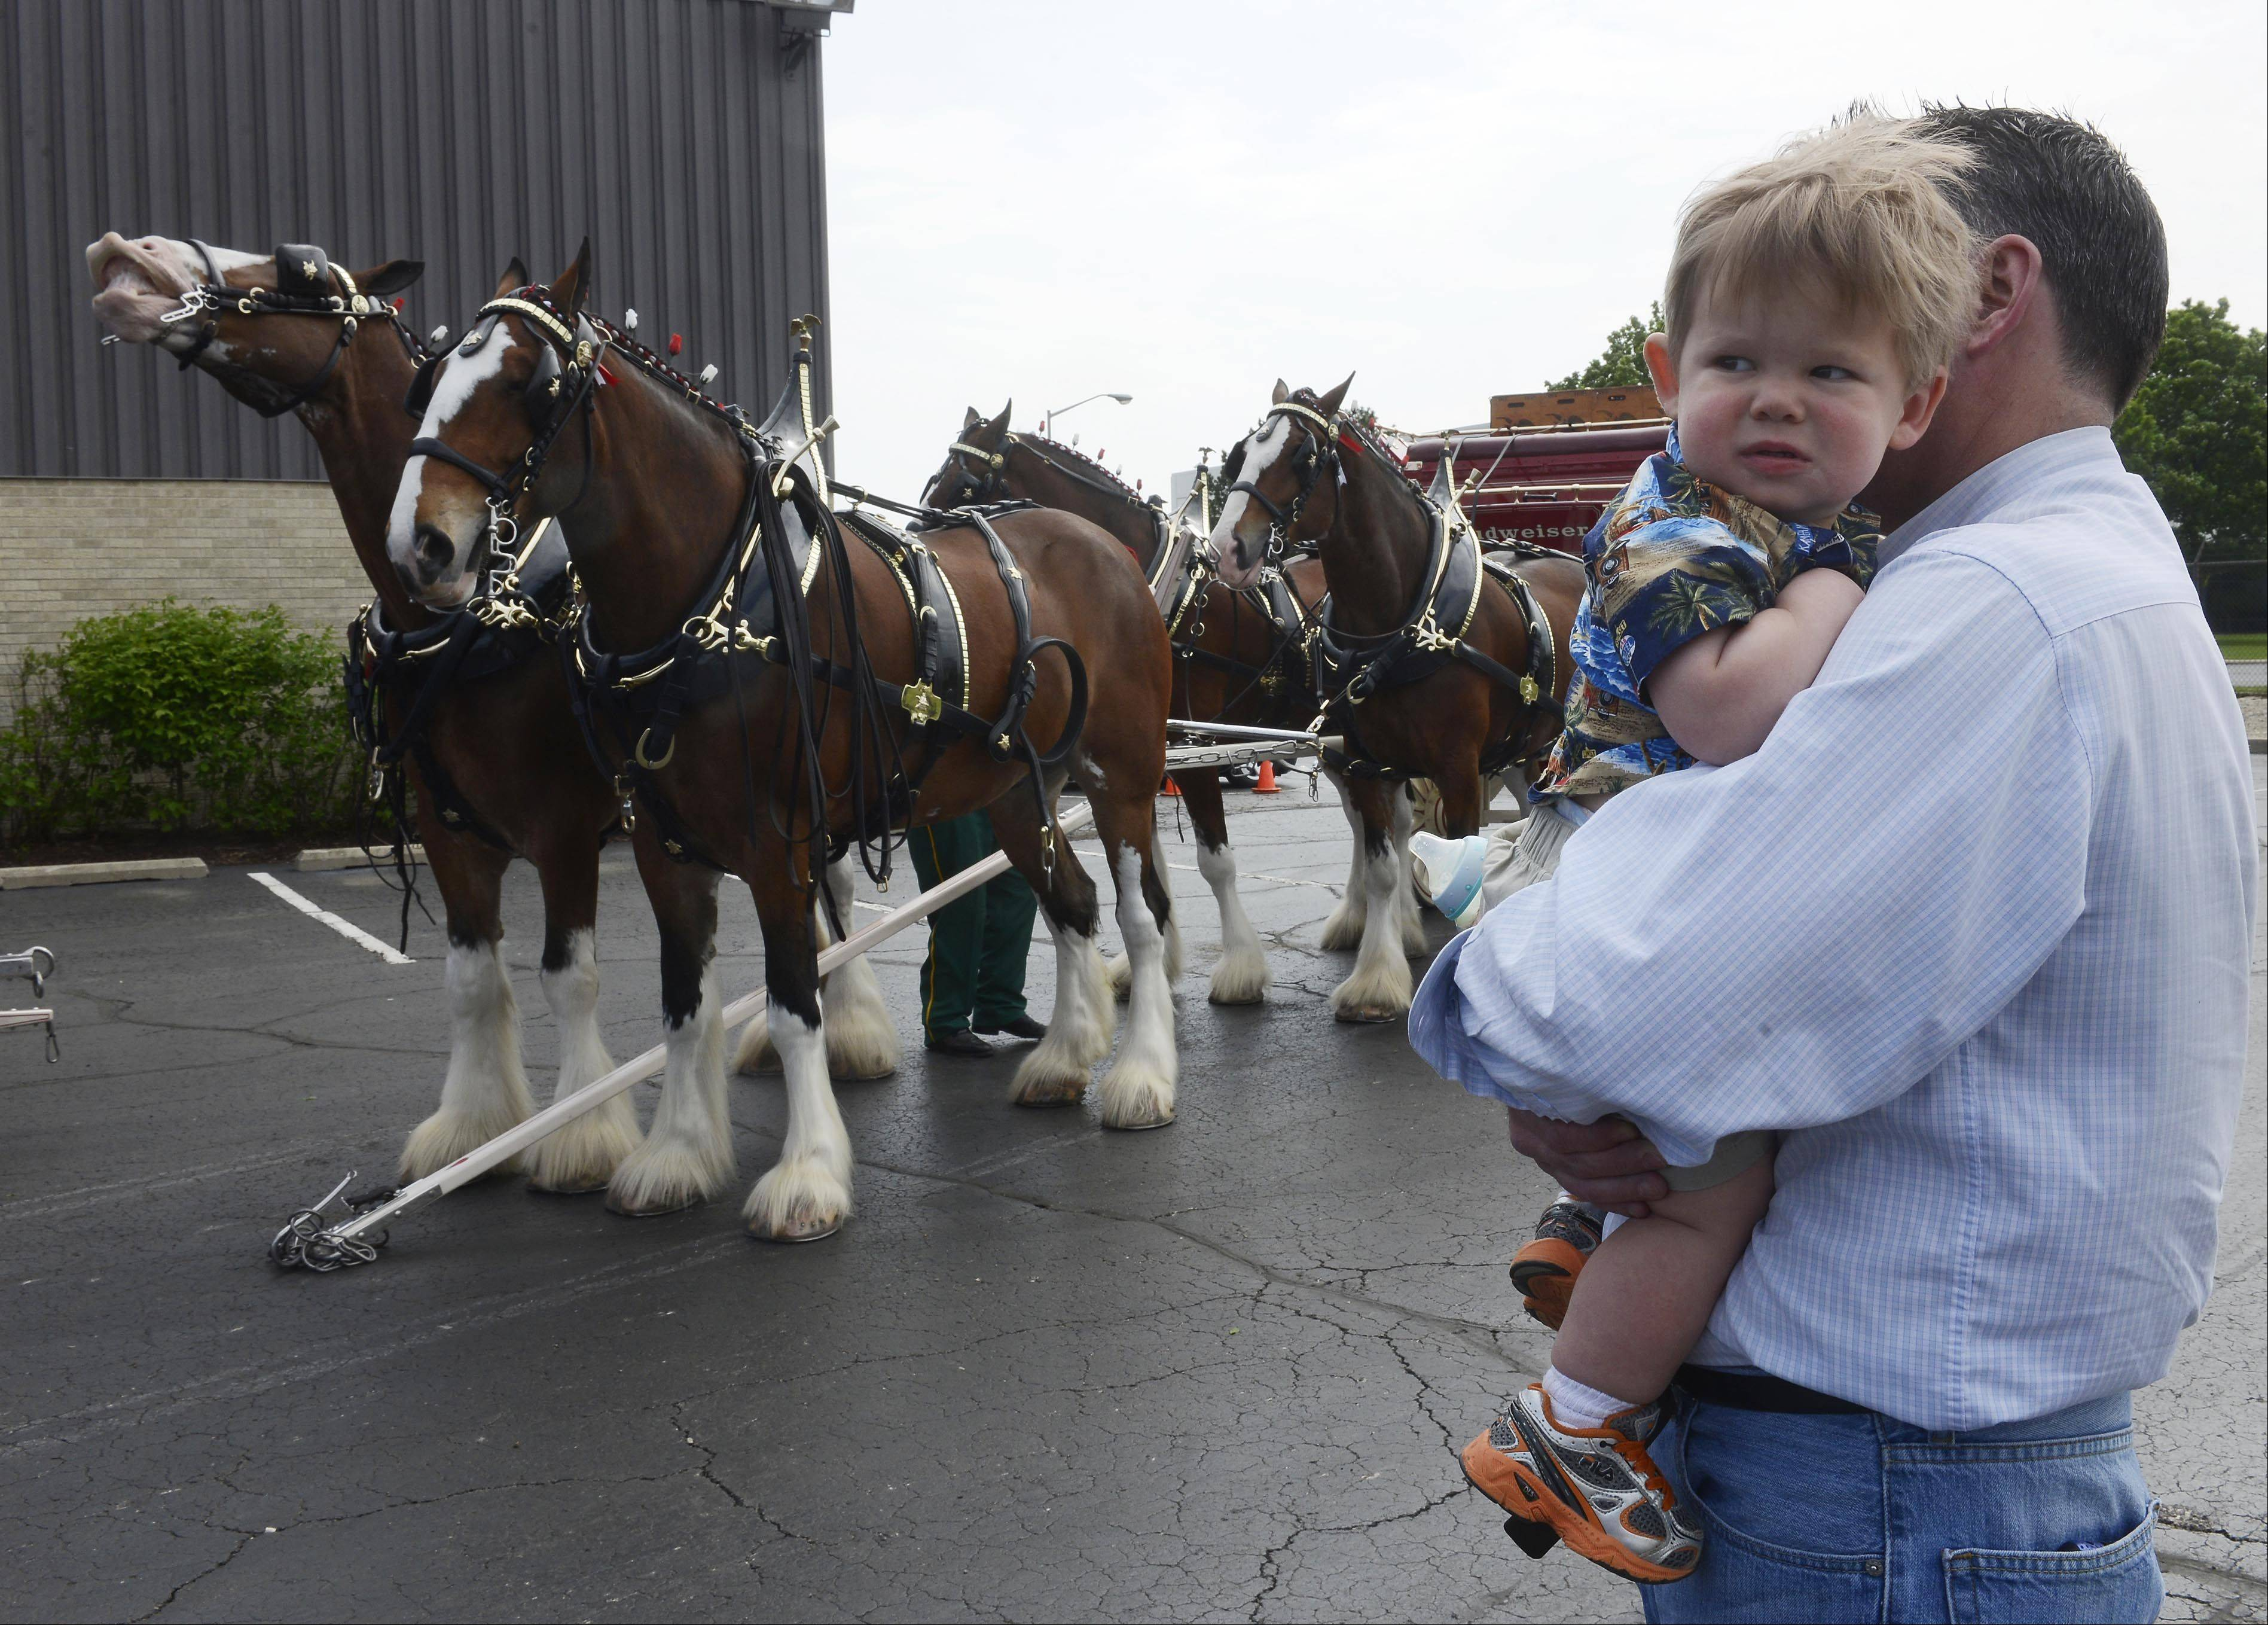 Jacob Johnson, age 18 months of Chicago, and his dad, Chris, an employee of City Beverage in Arlington Heights, view the Budweiser Clydesdales during a visit at a company gathering Friday. The public can view the Clydesdales at Lambs Farm near Libertyville at 1 p.m. Saturday.